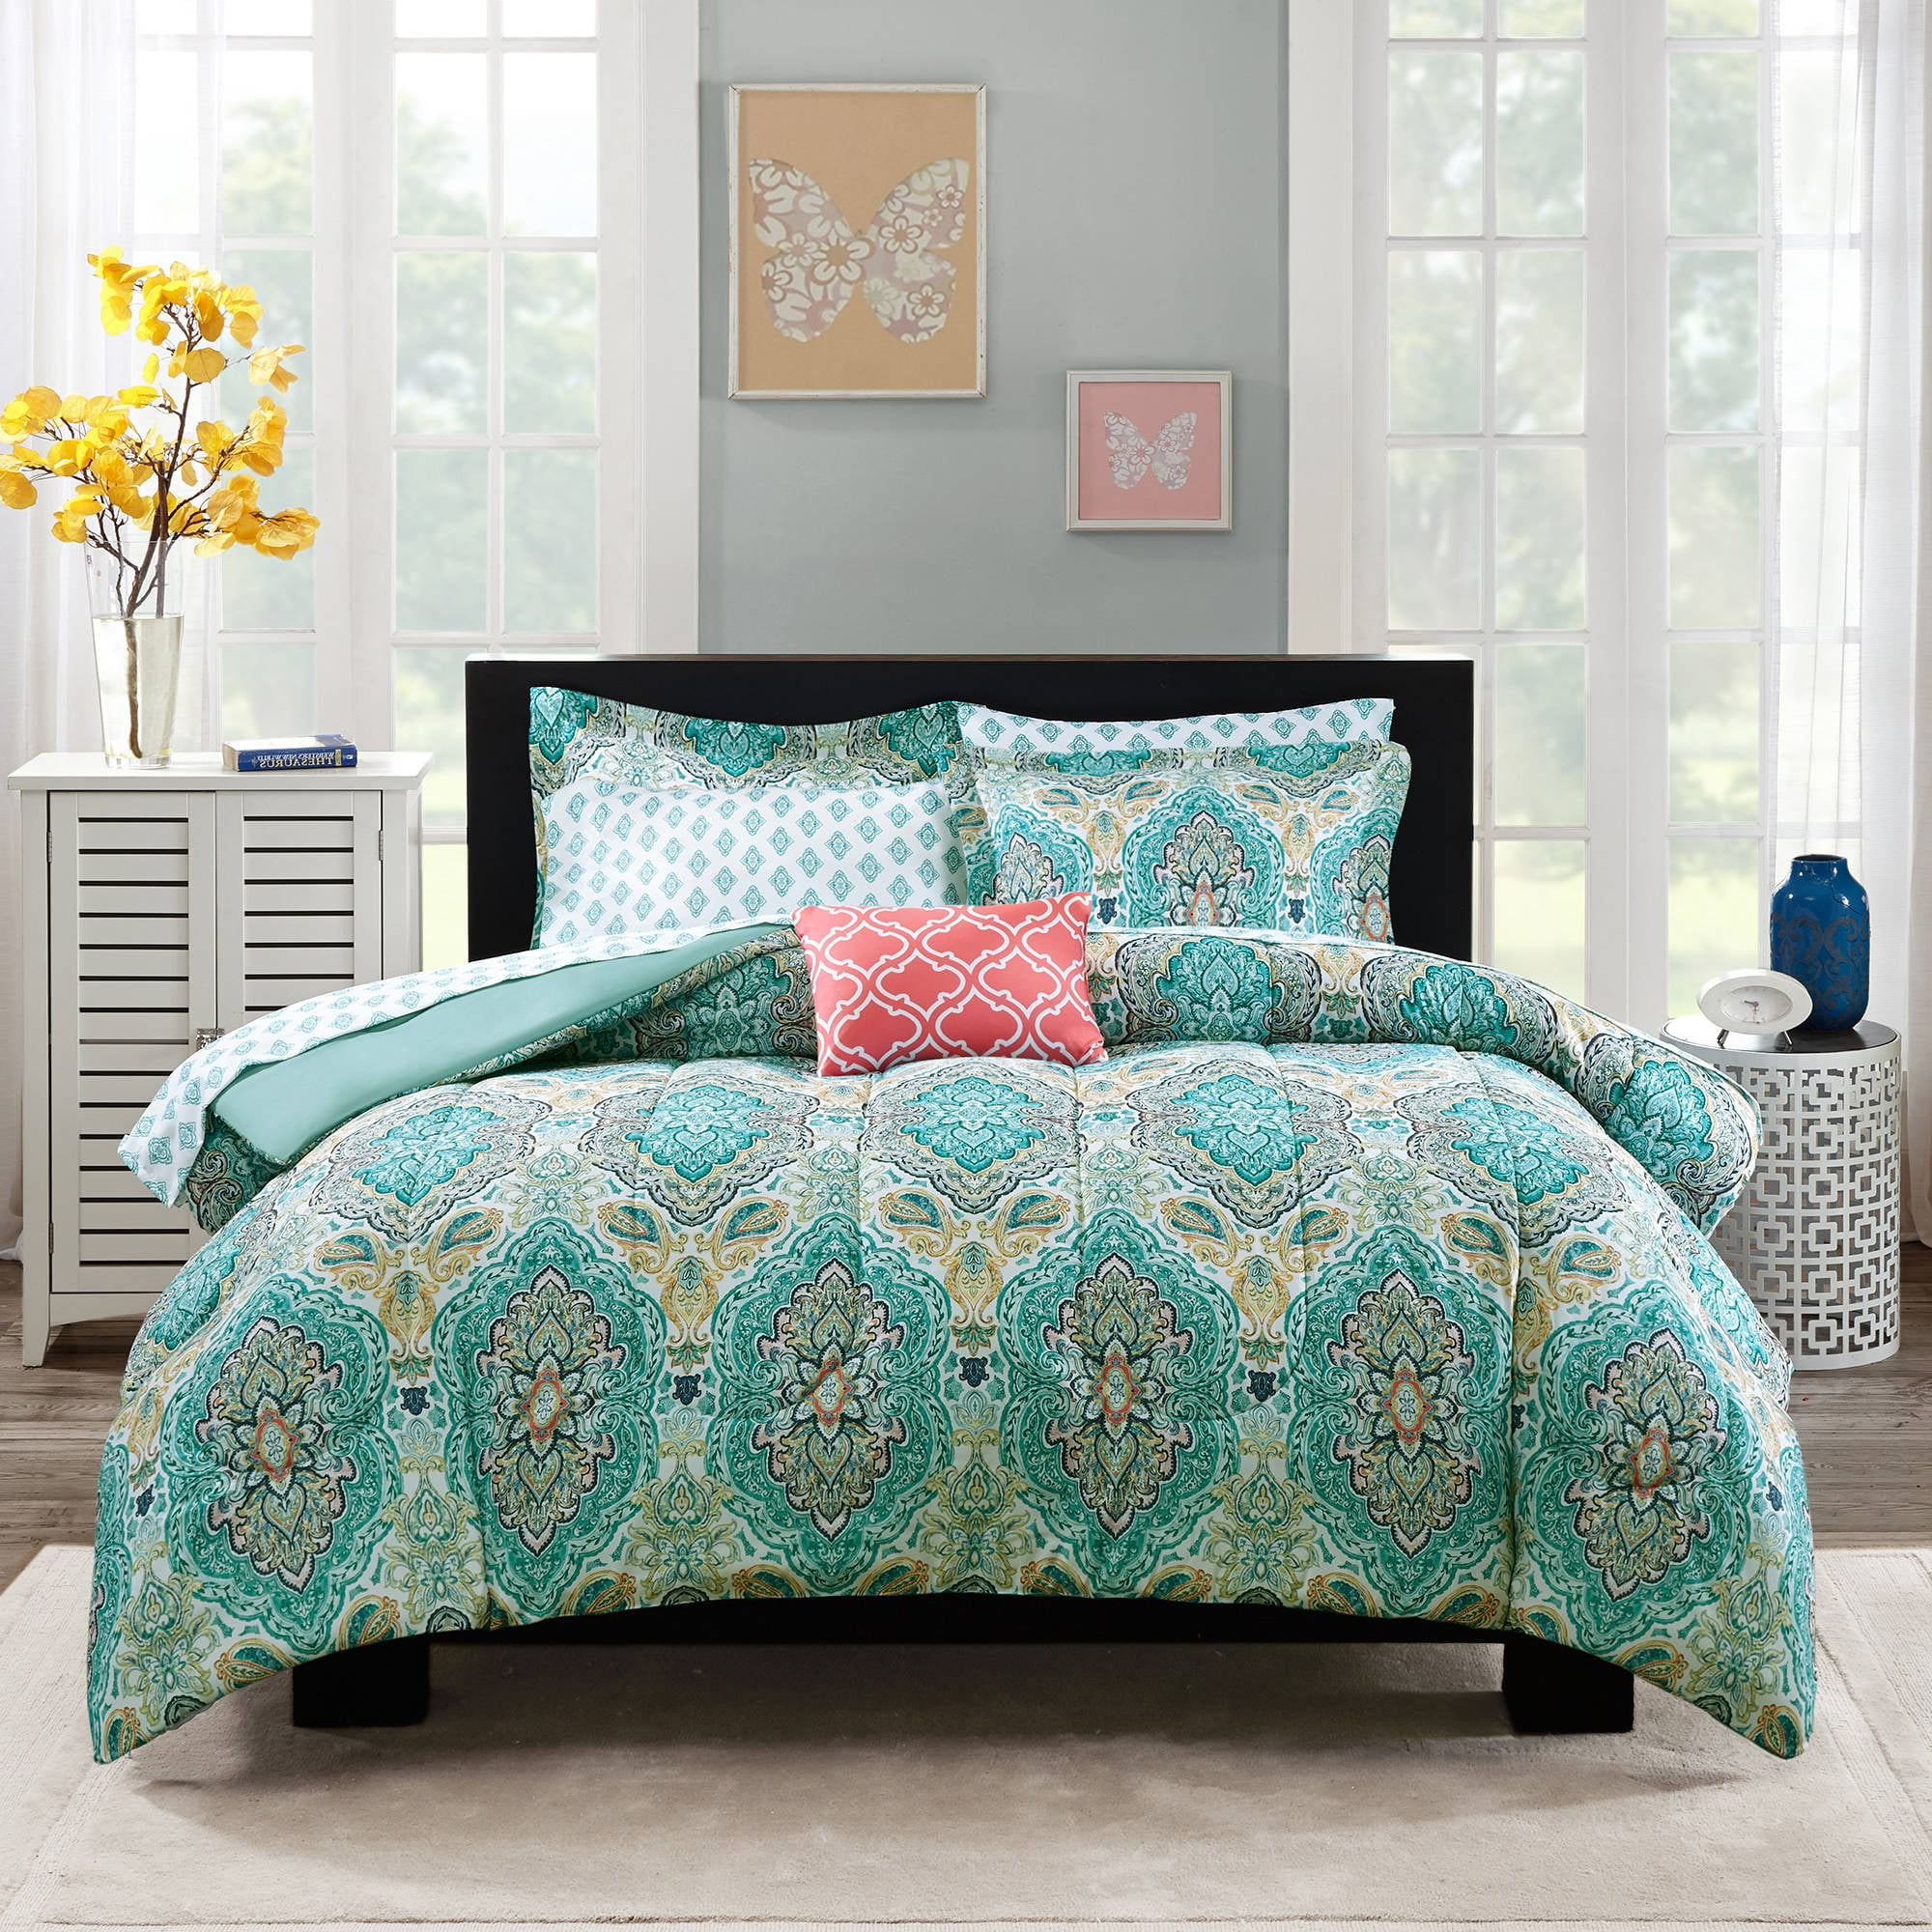 Bedroom Sets Full Size Mint Black And White Bedroom Ideas Lighting For Small Bedroom Bedroom With Black Accent Wall: Mainstays Monique Paisley Bed-in-a-Bag Comforter Set